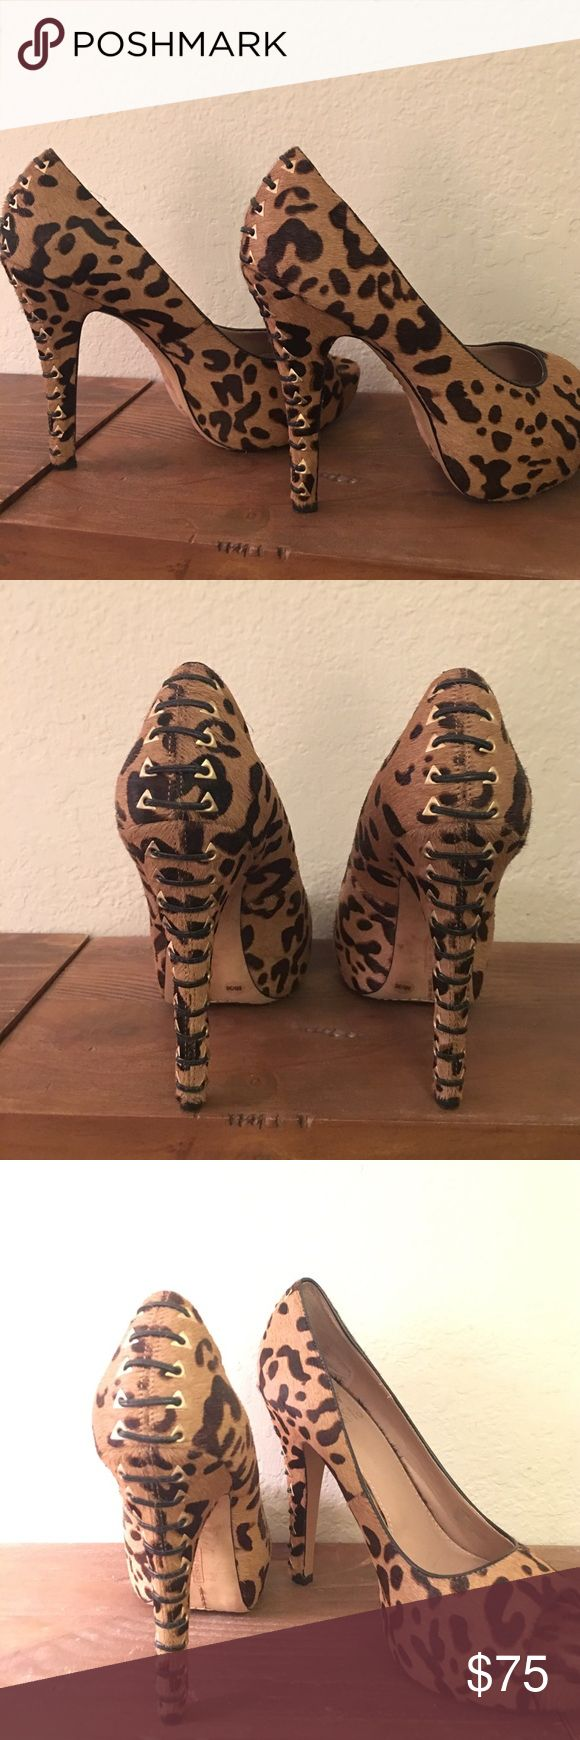 Vince Camuto Cheetah print lace heels Vince Camuto cheetah hair lace heel stiletto. 1 inch platform, 4 inch heel. In great condition!! Barely worn. Back lace up detail in black and gold. Vince Camuto Shoes Heels